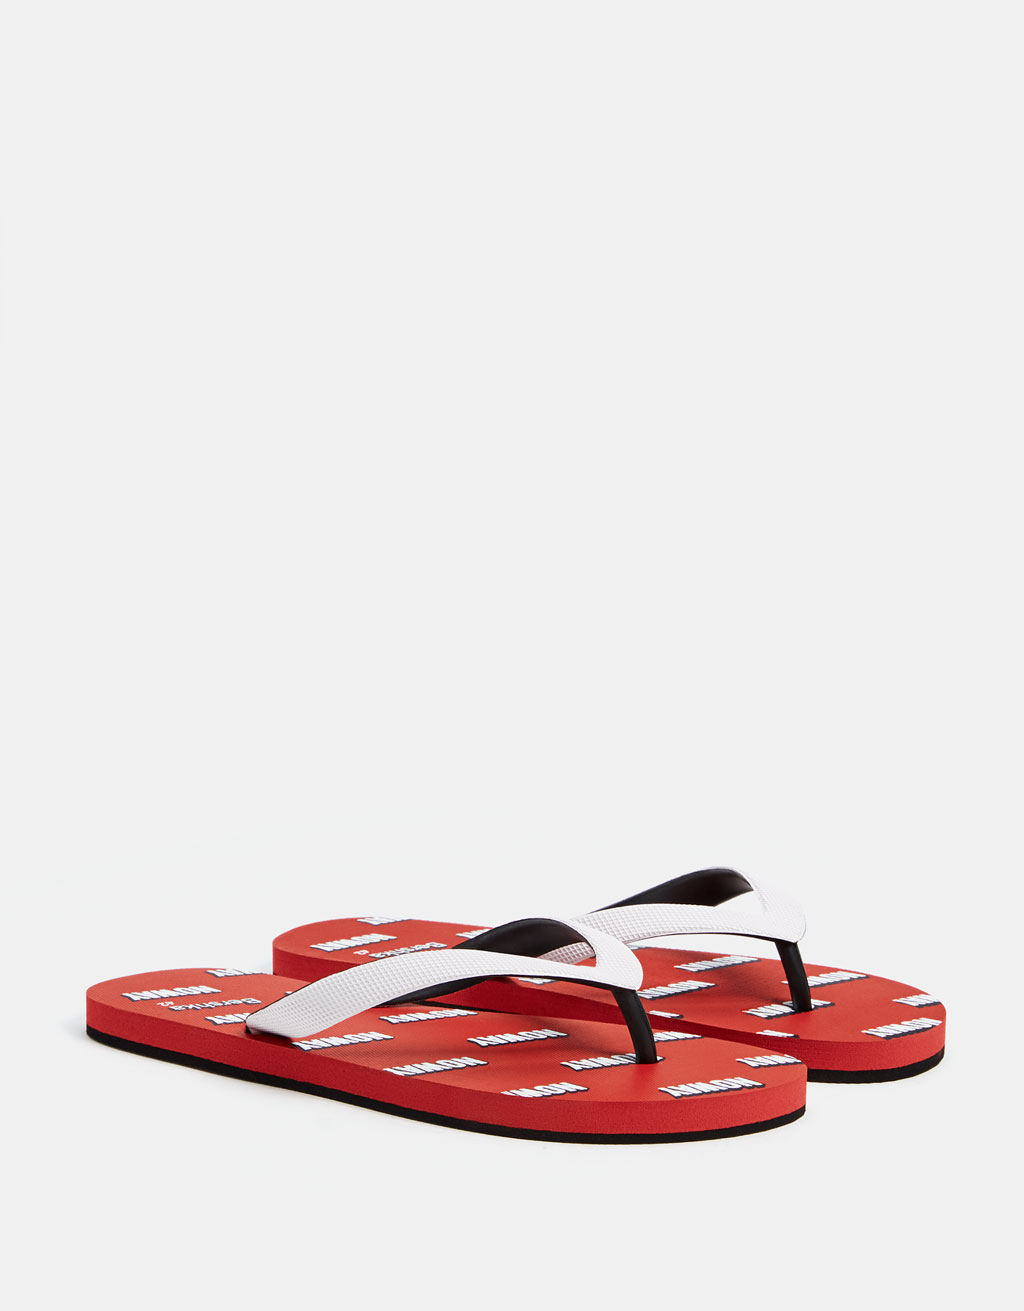 Men's sandals with slogan